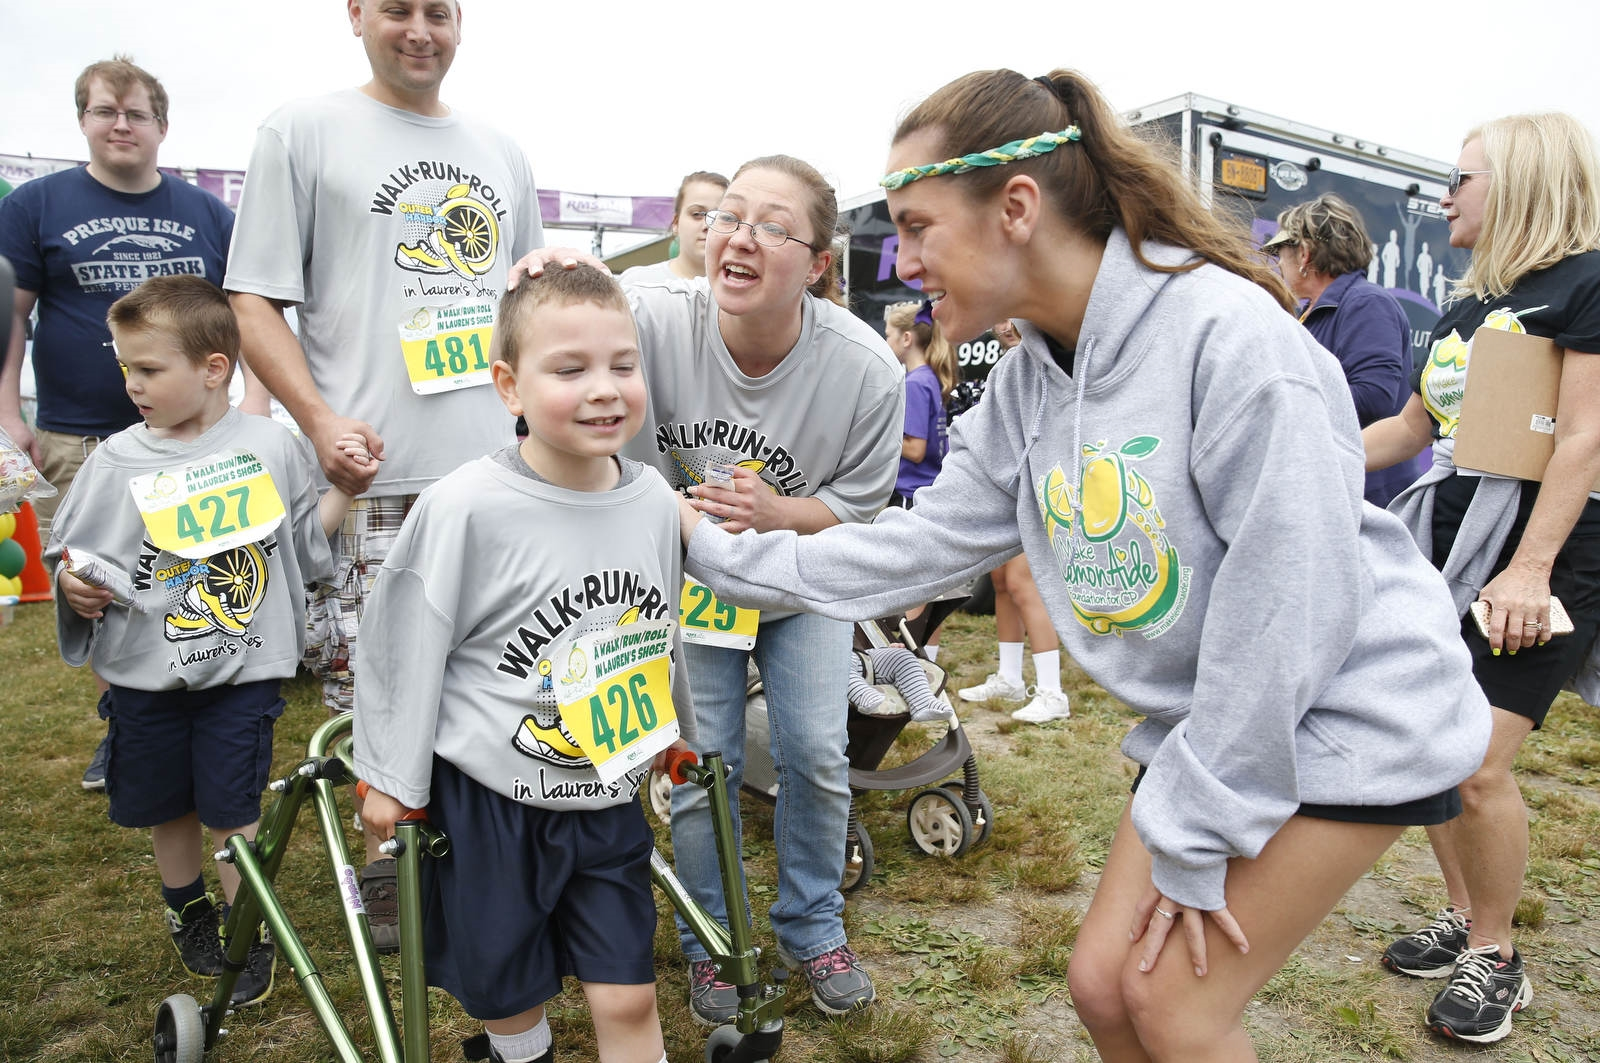 Media Coverage for the 5th Annual Run/Walk/Roll in Lauren's Shoes